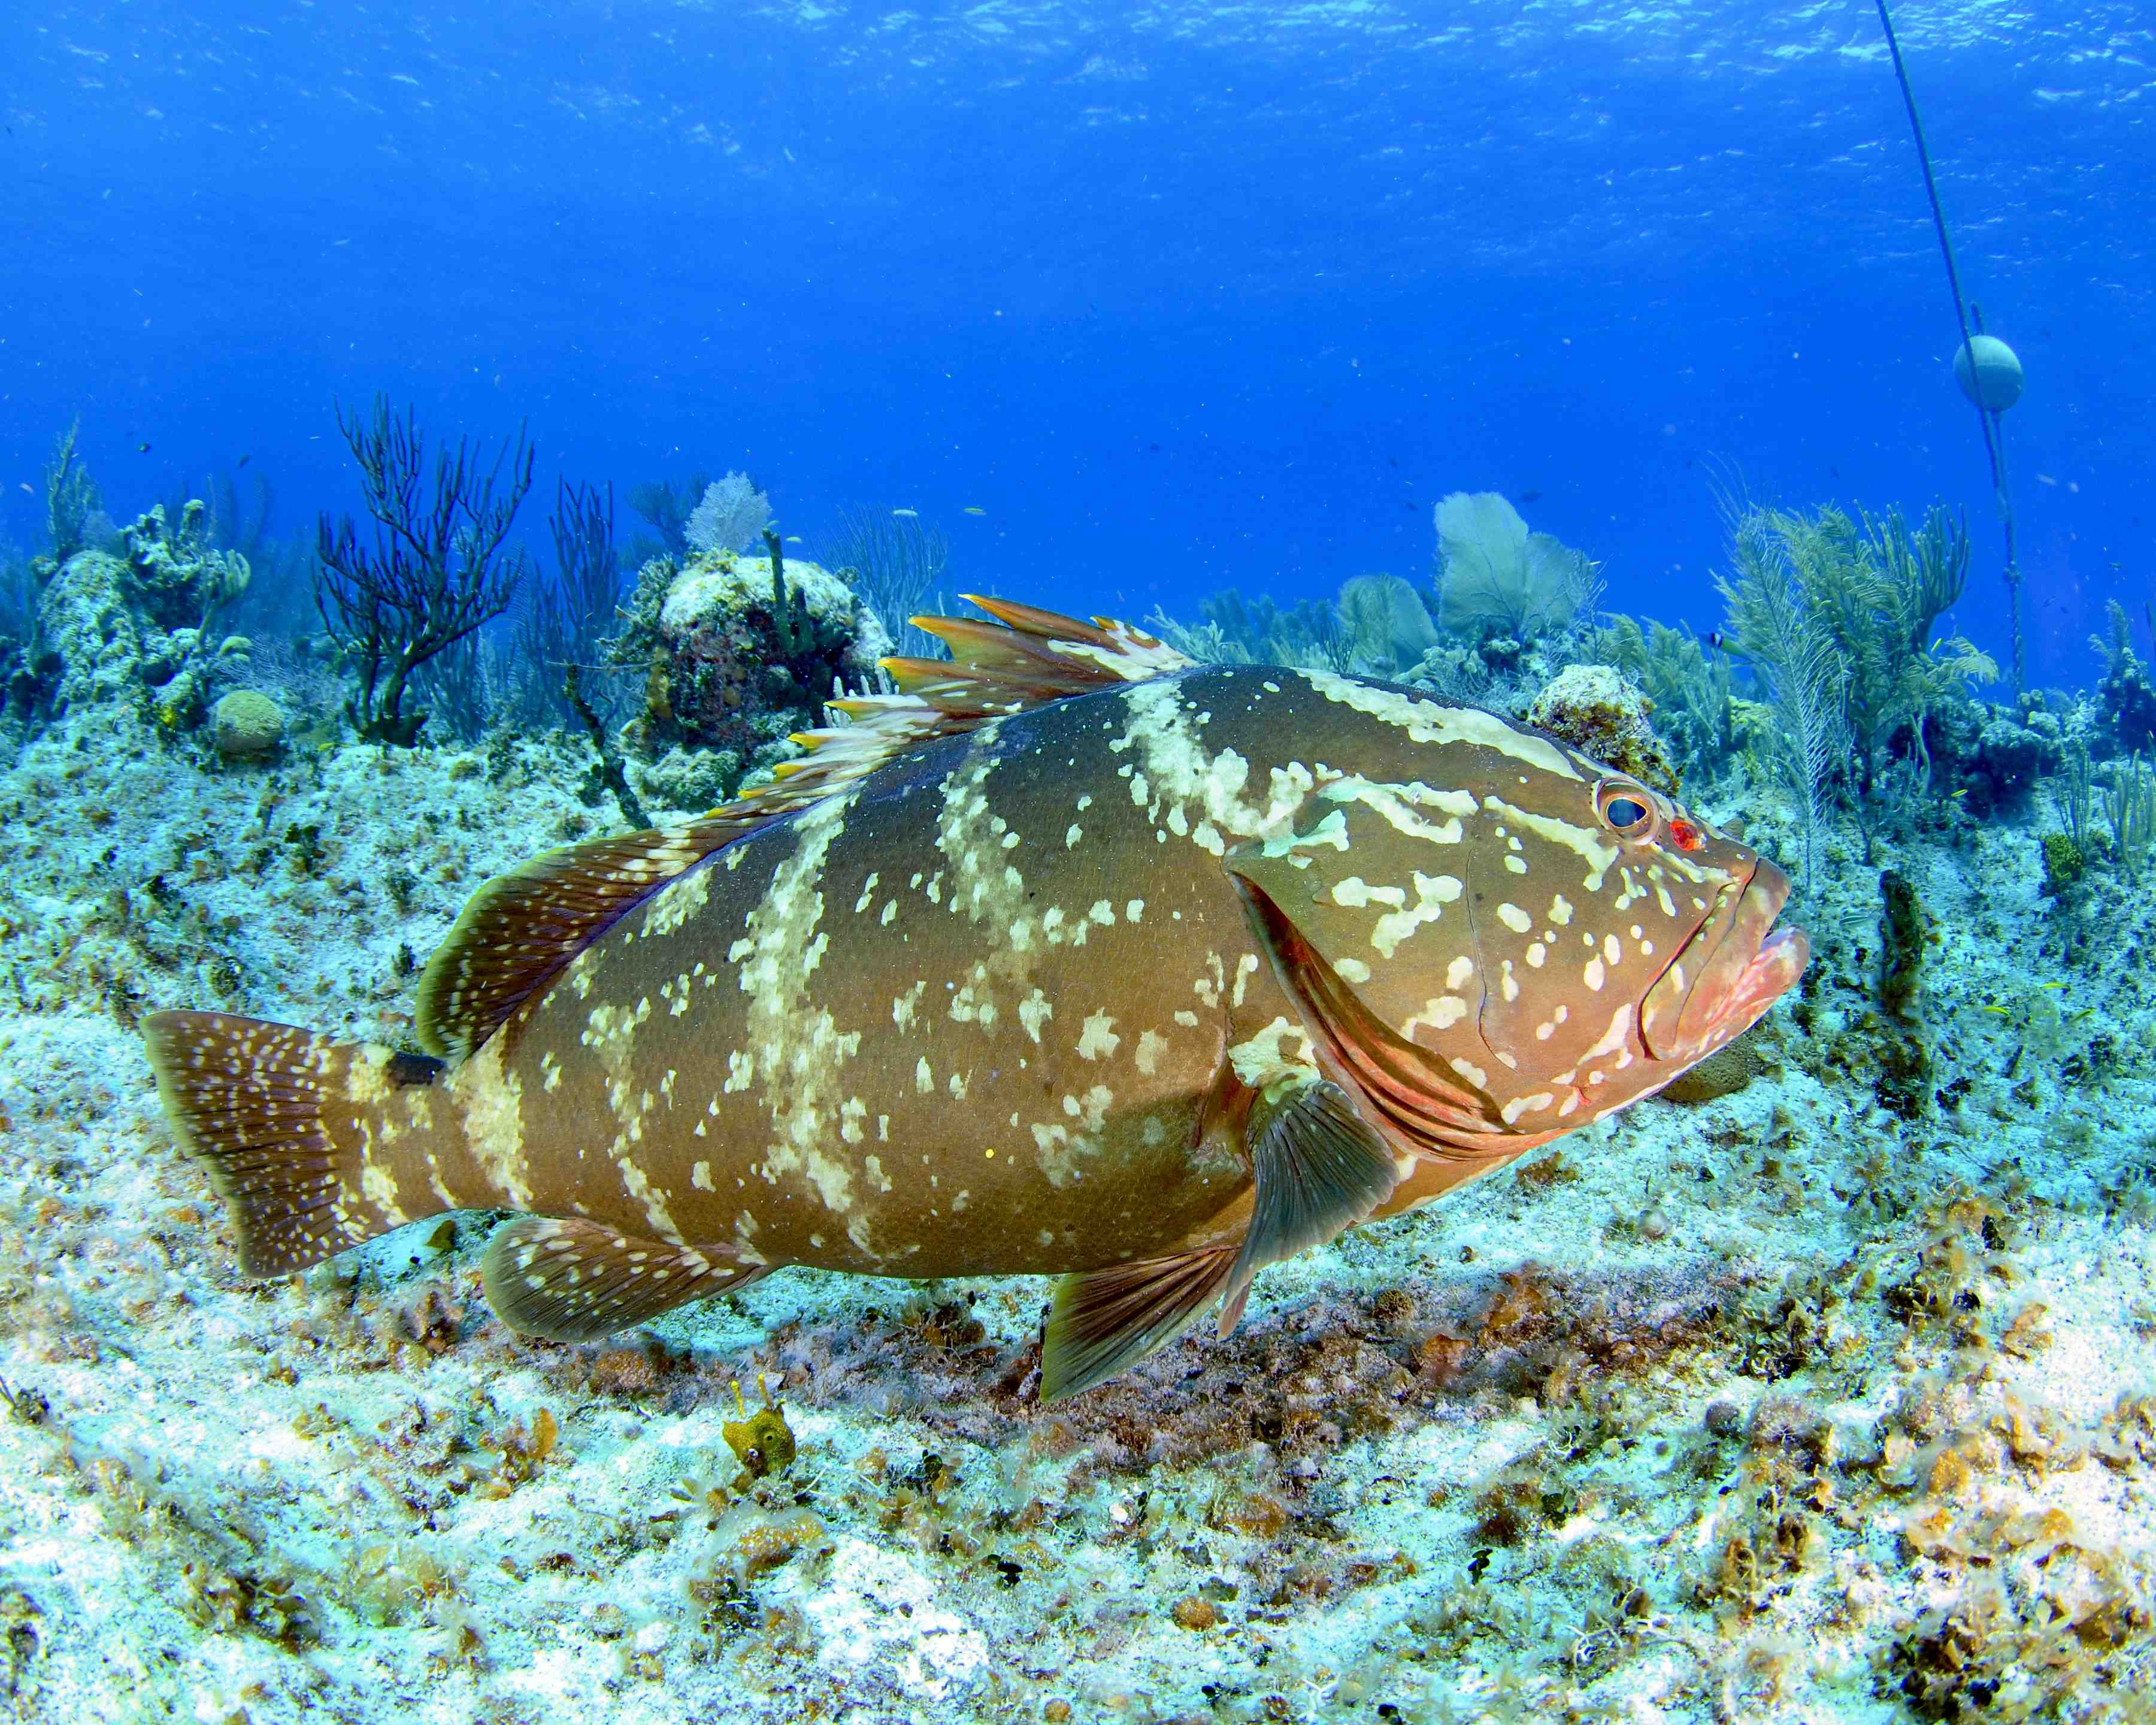 NASSAU GROUPER: VULNERABLE, ENDANGERED? & NOW PROTECTED ROLLING ...